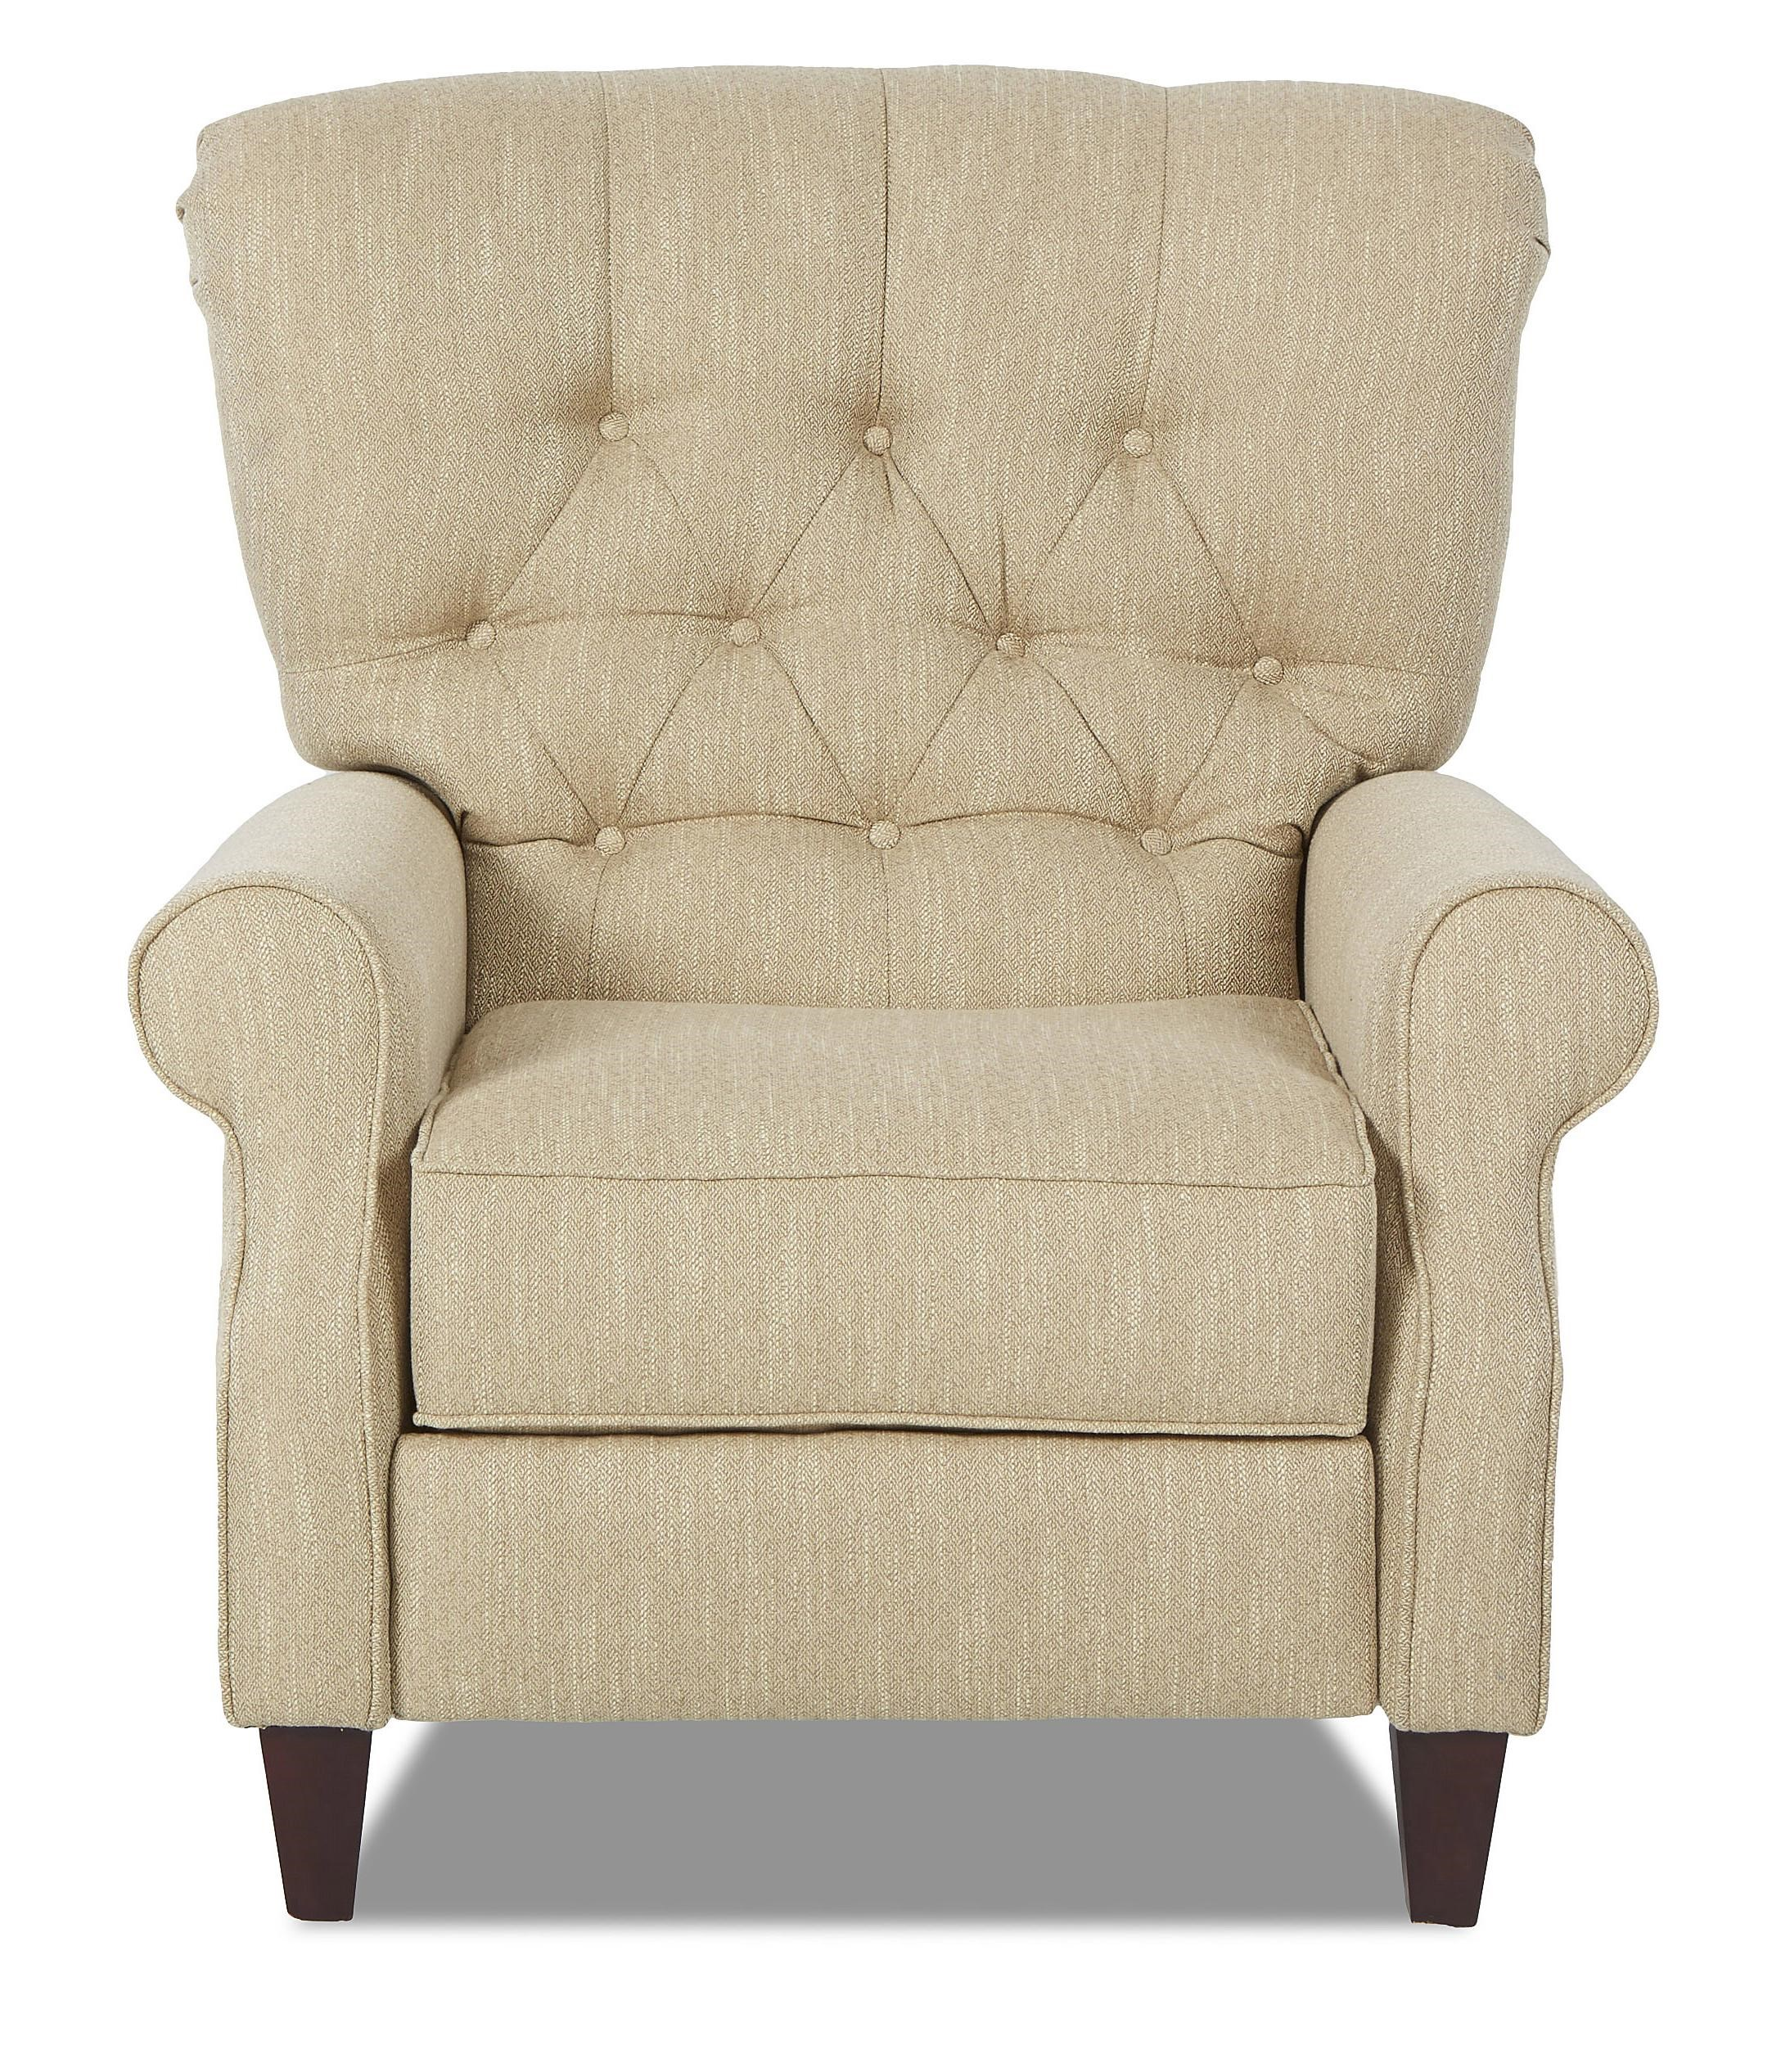 Klaussner Strand Traditional Power High Leg Recliner with Tufted Back  sc 1 st  Wayside Furniture & Klaussner Strand Traditional Power High Leg Recliner with Tufted ... islam-shia.org